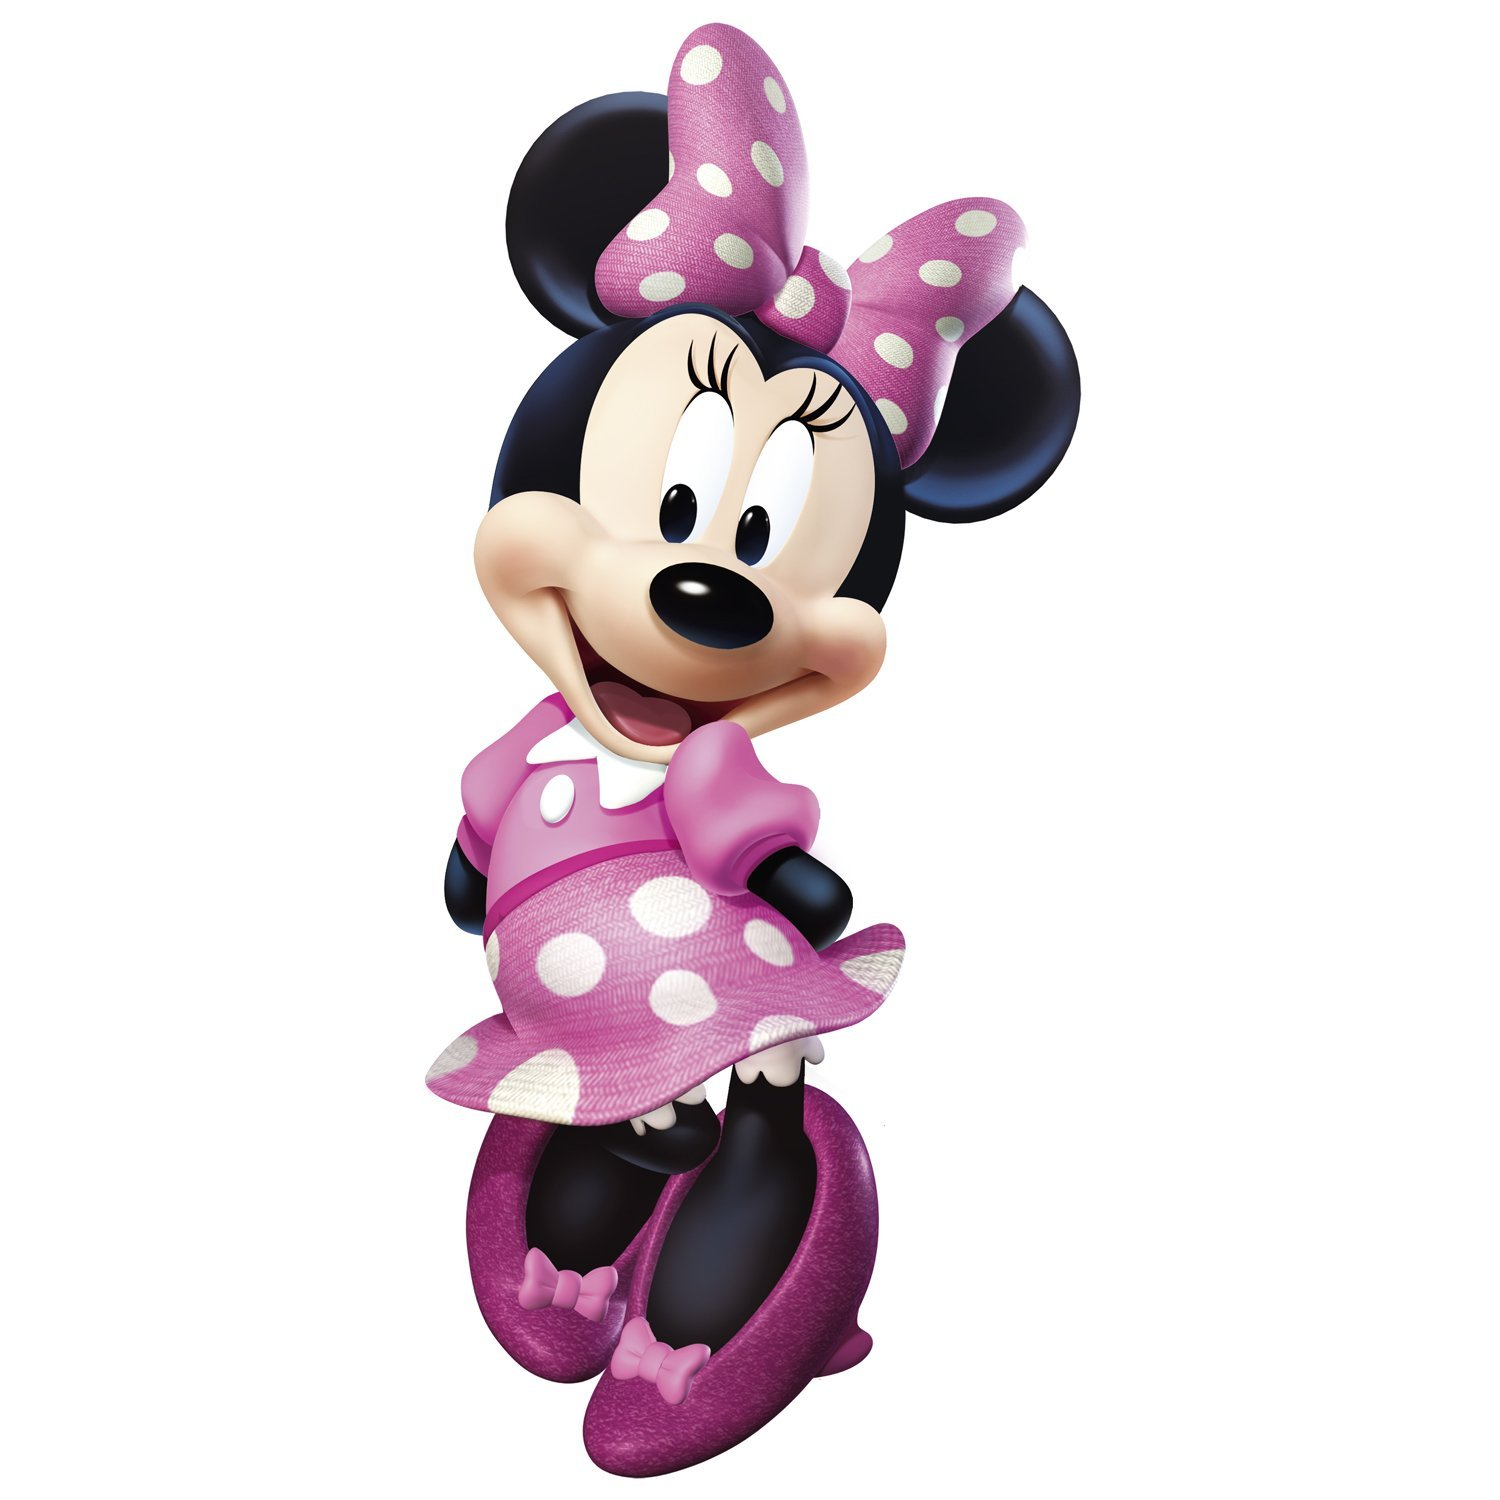 mickey-and-friends-wall-decal-minnie.jpg